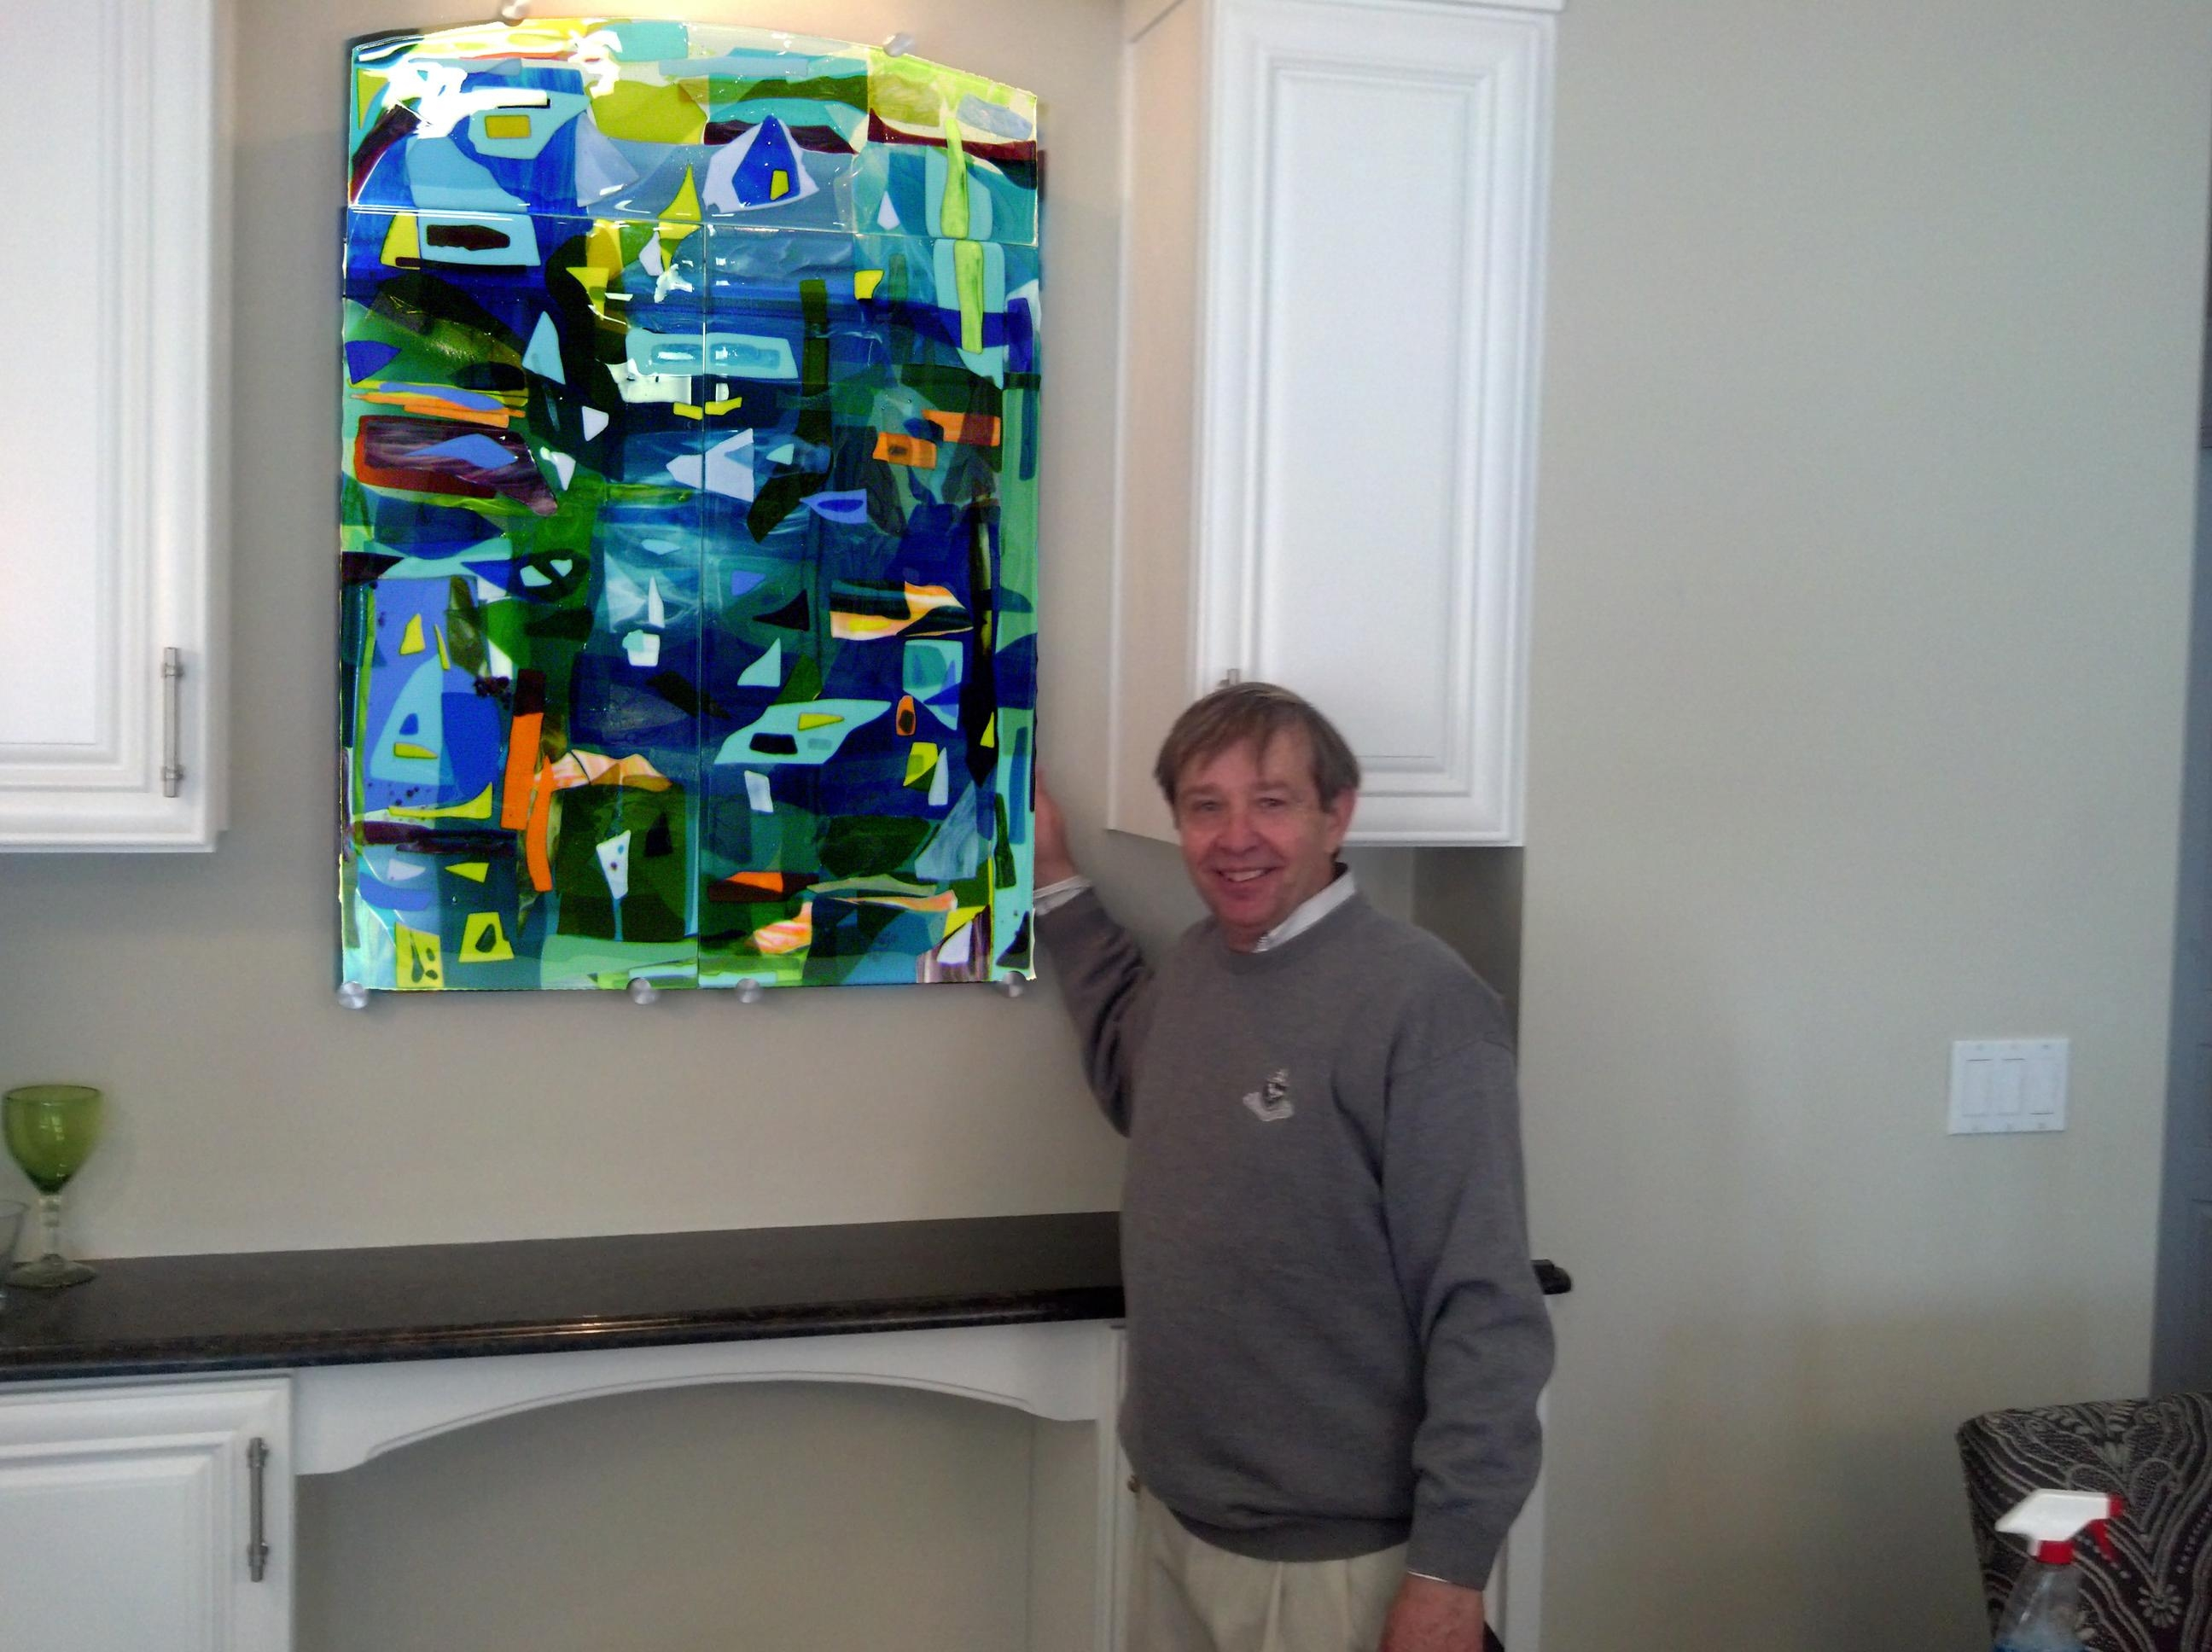 Colorful Fused Glass Wall Art Panel | Designer Glass Mosaics For Glass Wall Art Panels (View 4 of 20)